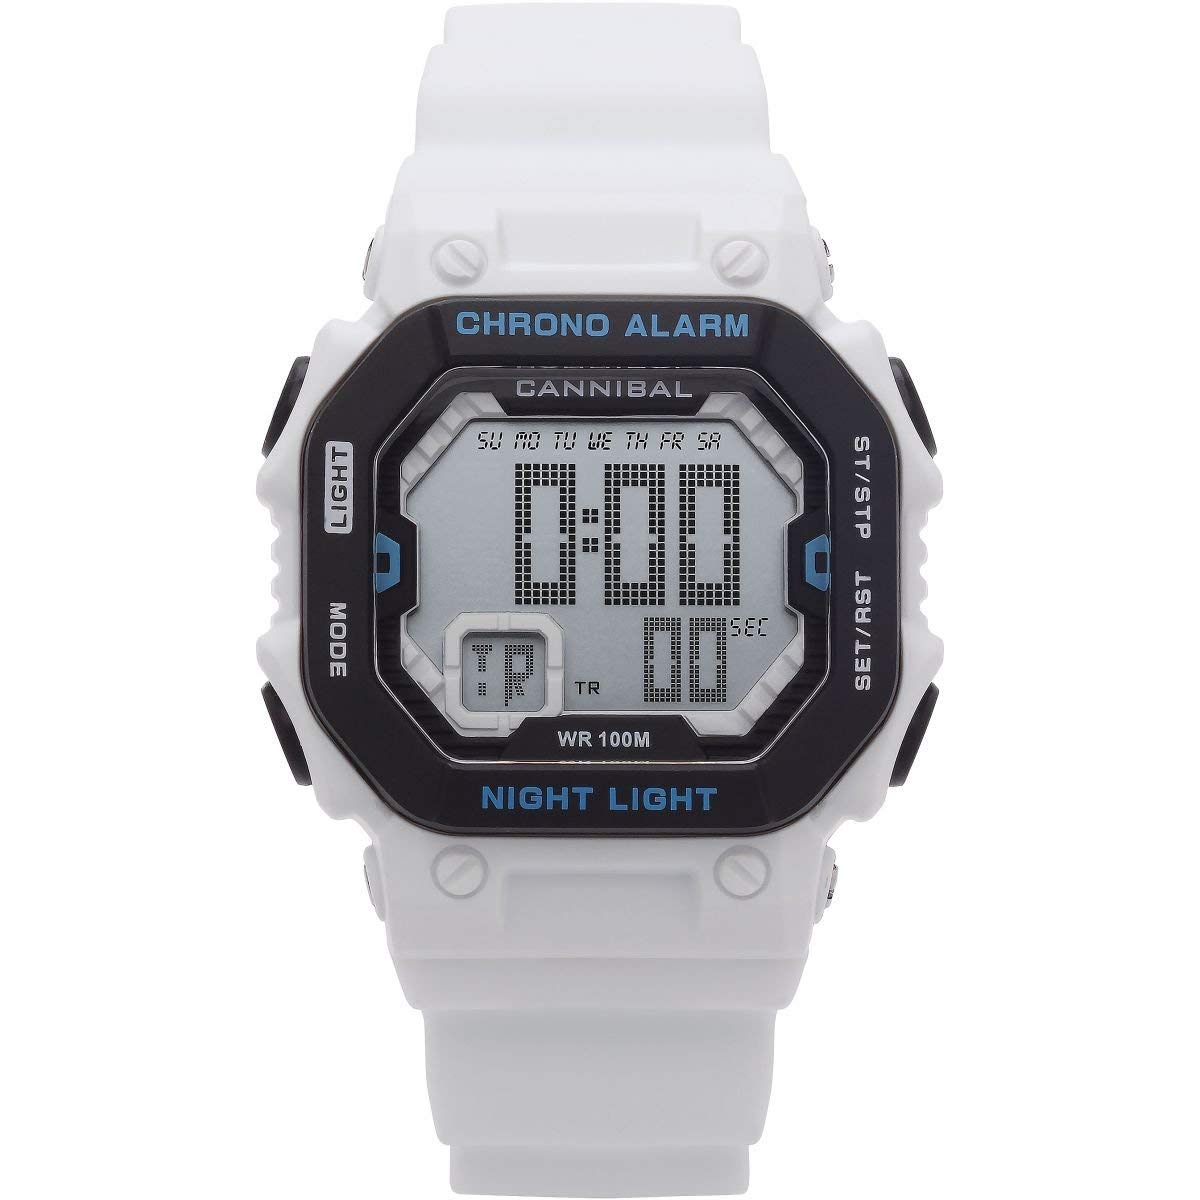 9c226a911 Details about Cannibal Boys/Teen Digital Chronograph White Silicone Strap  Watch CD276-09